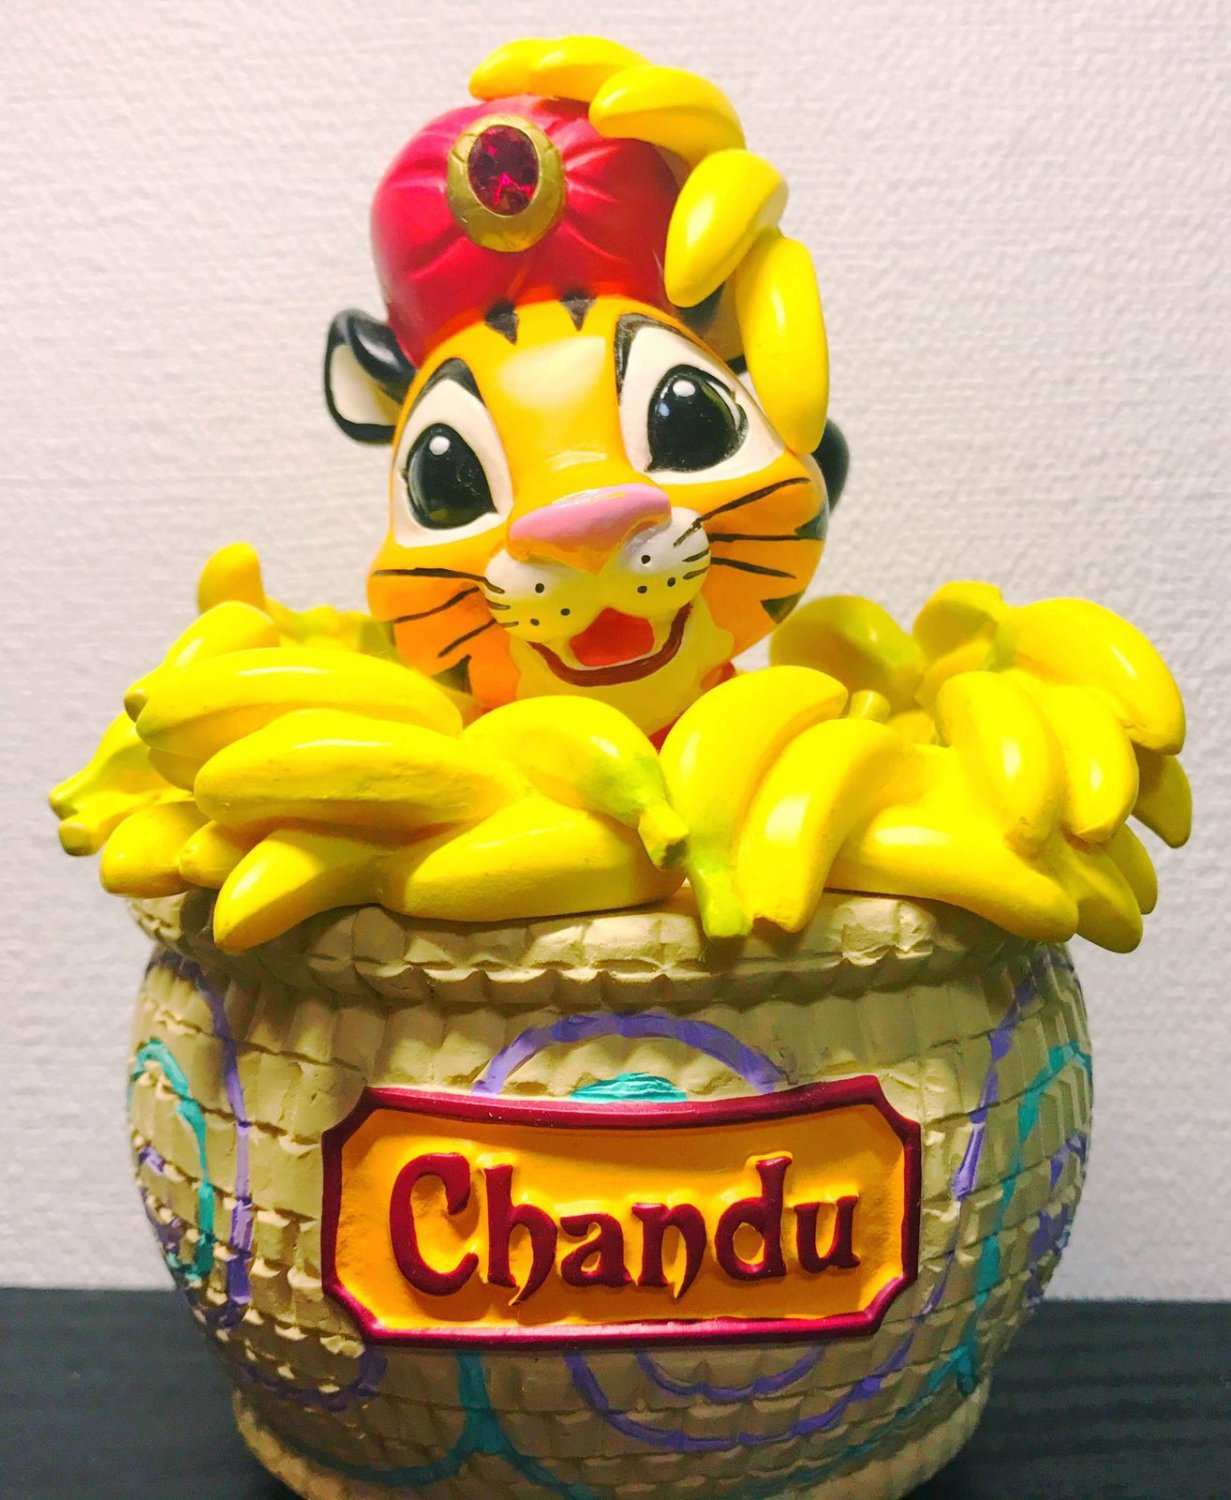 Tokyo Disney Sea limited Chandu Music Box figure Trick ornament Disneyland F/S